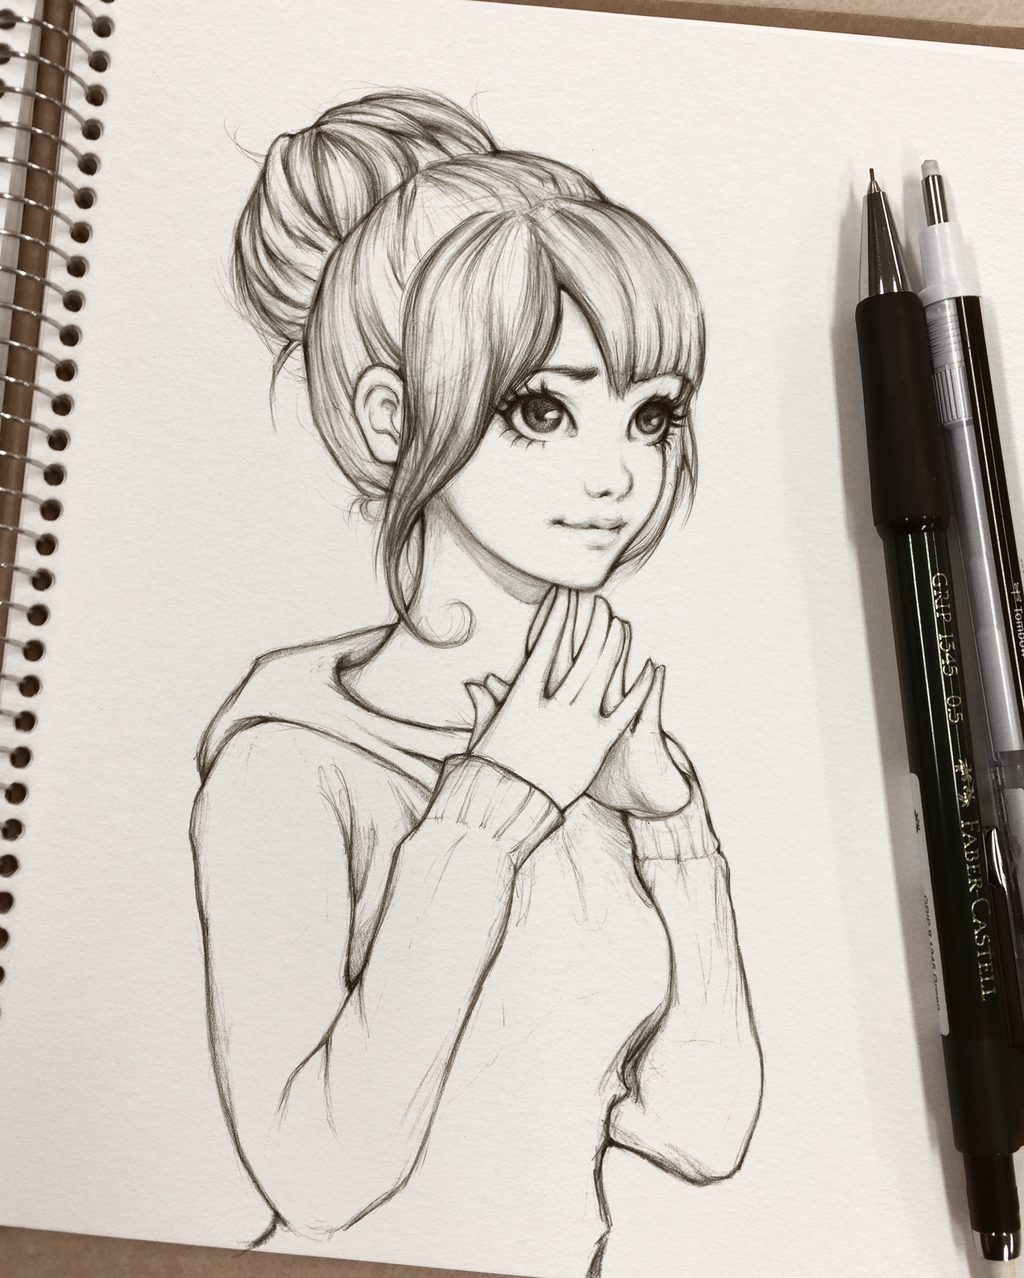 Cute manga girl sketch bing images card from user вита б in yandex collections